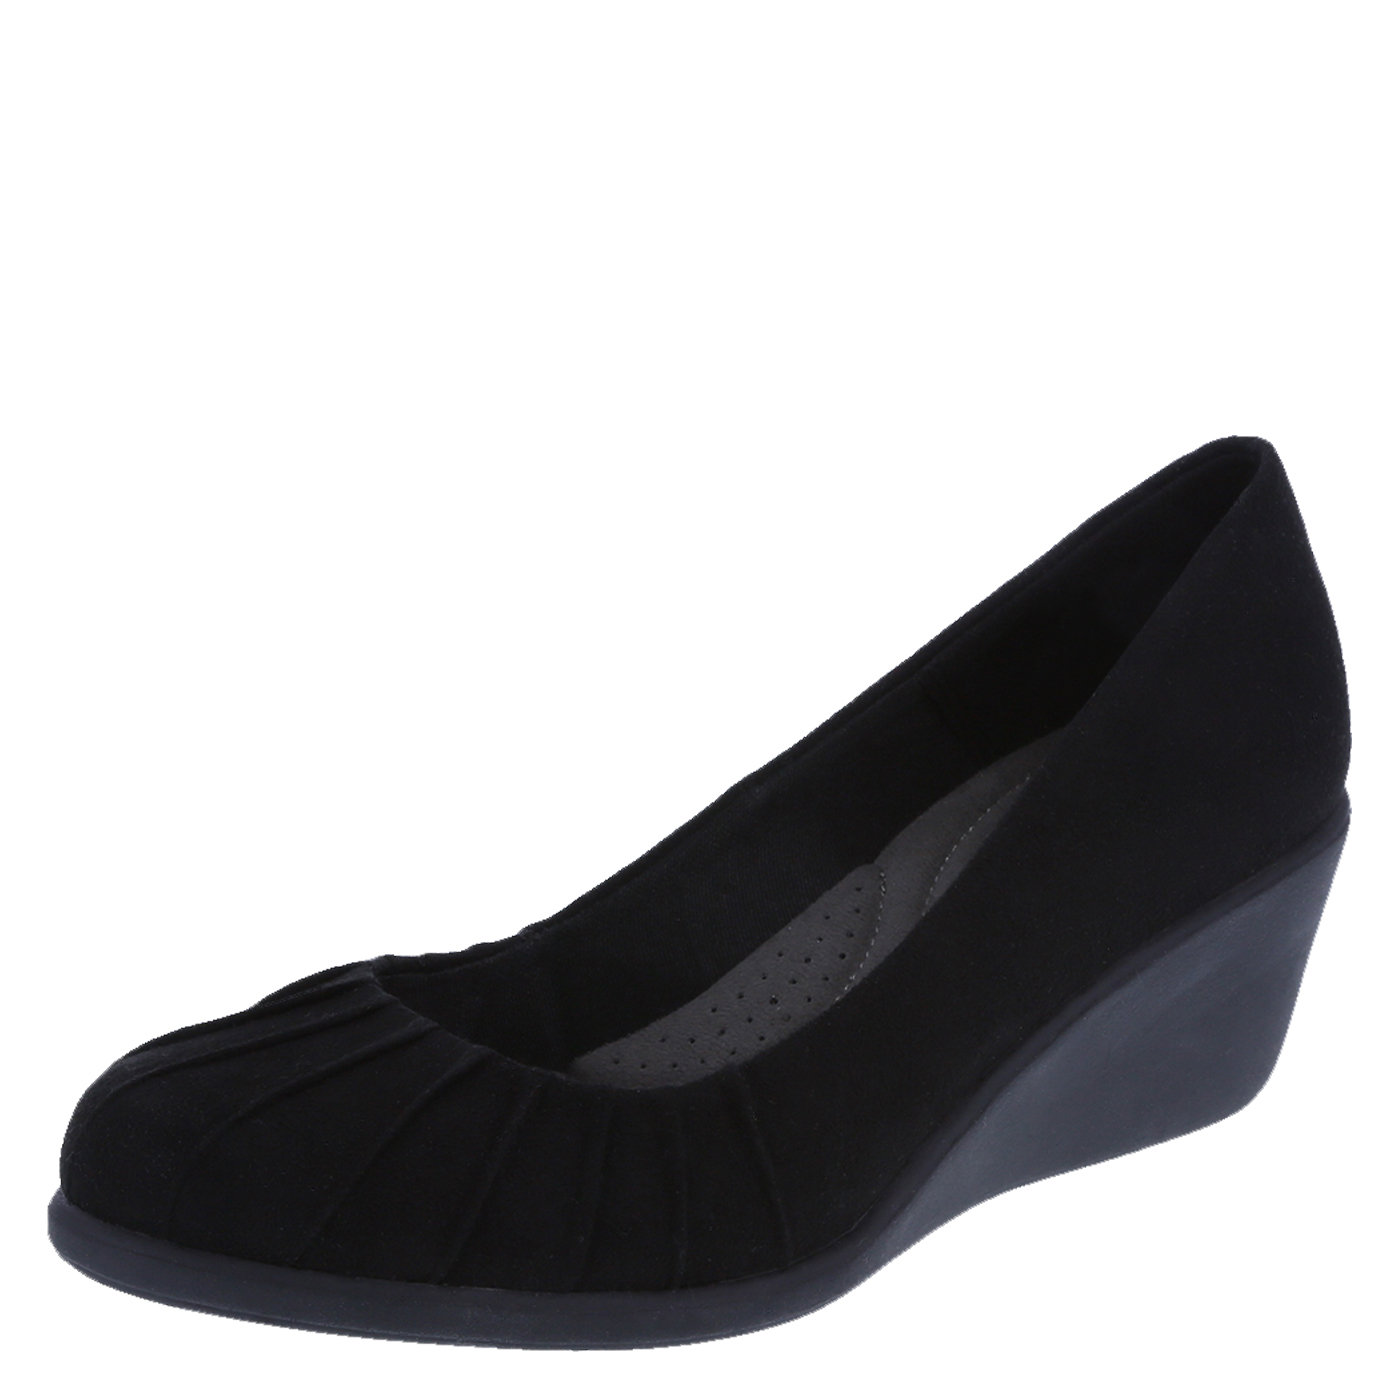 Wedge Heels Black kCb0dsN3